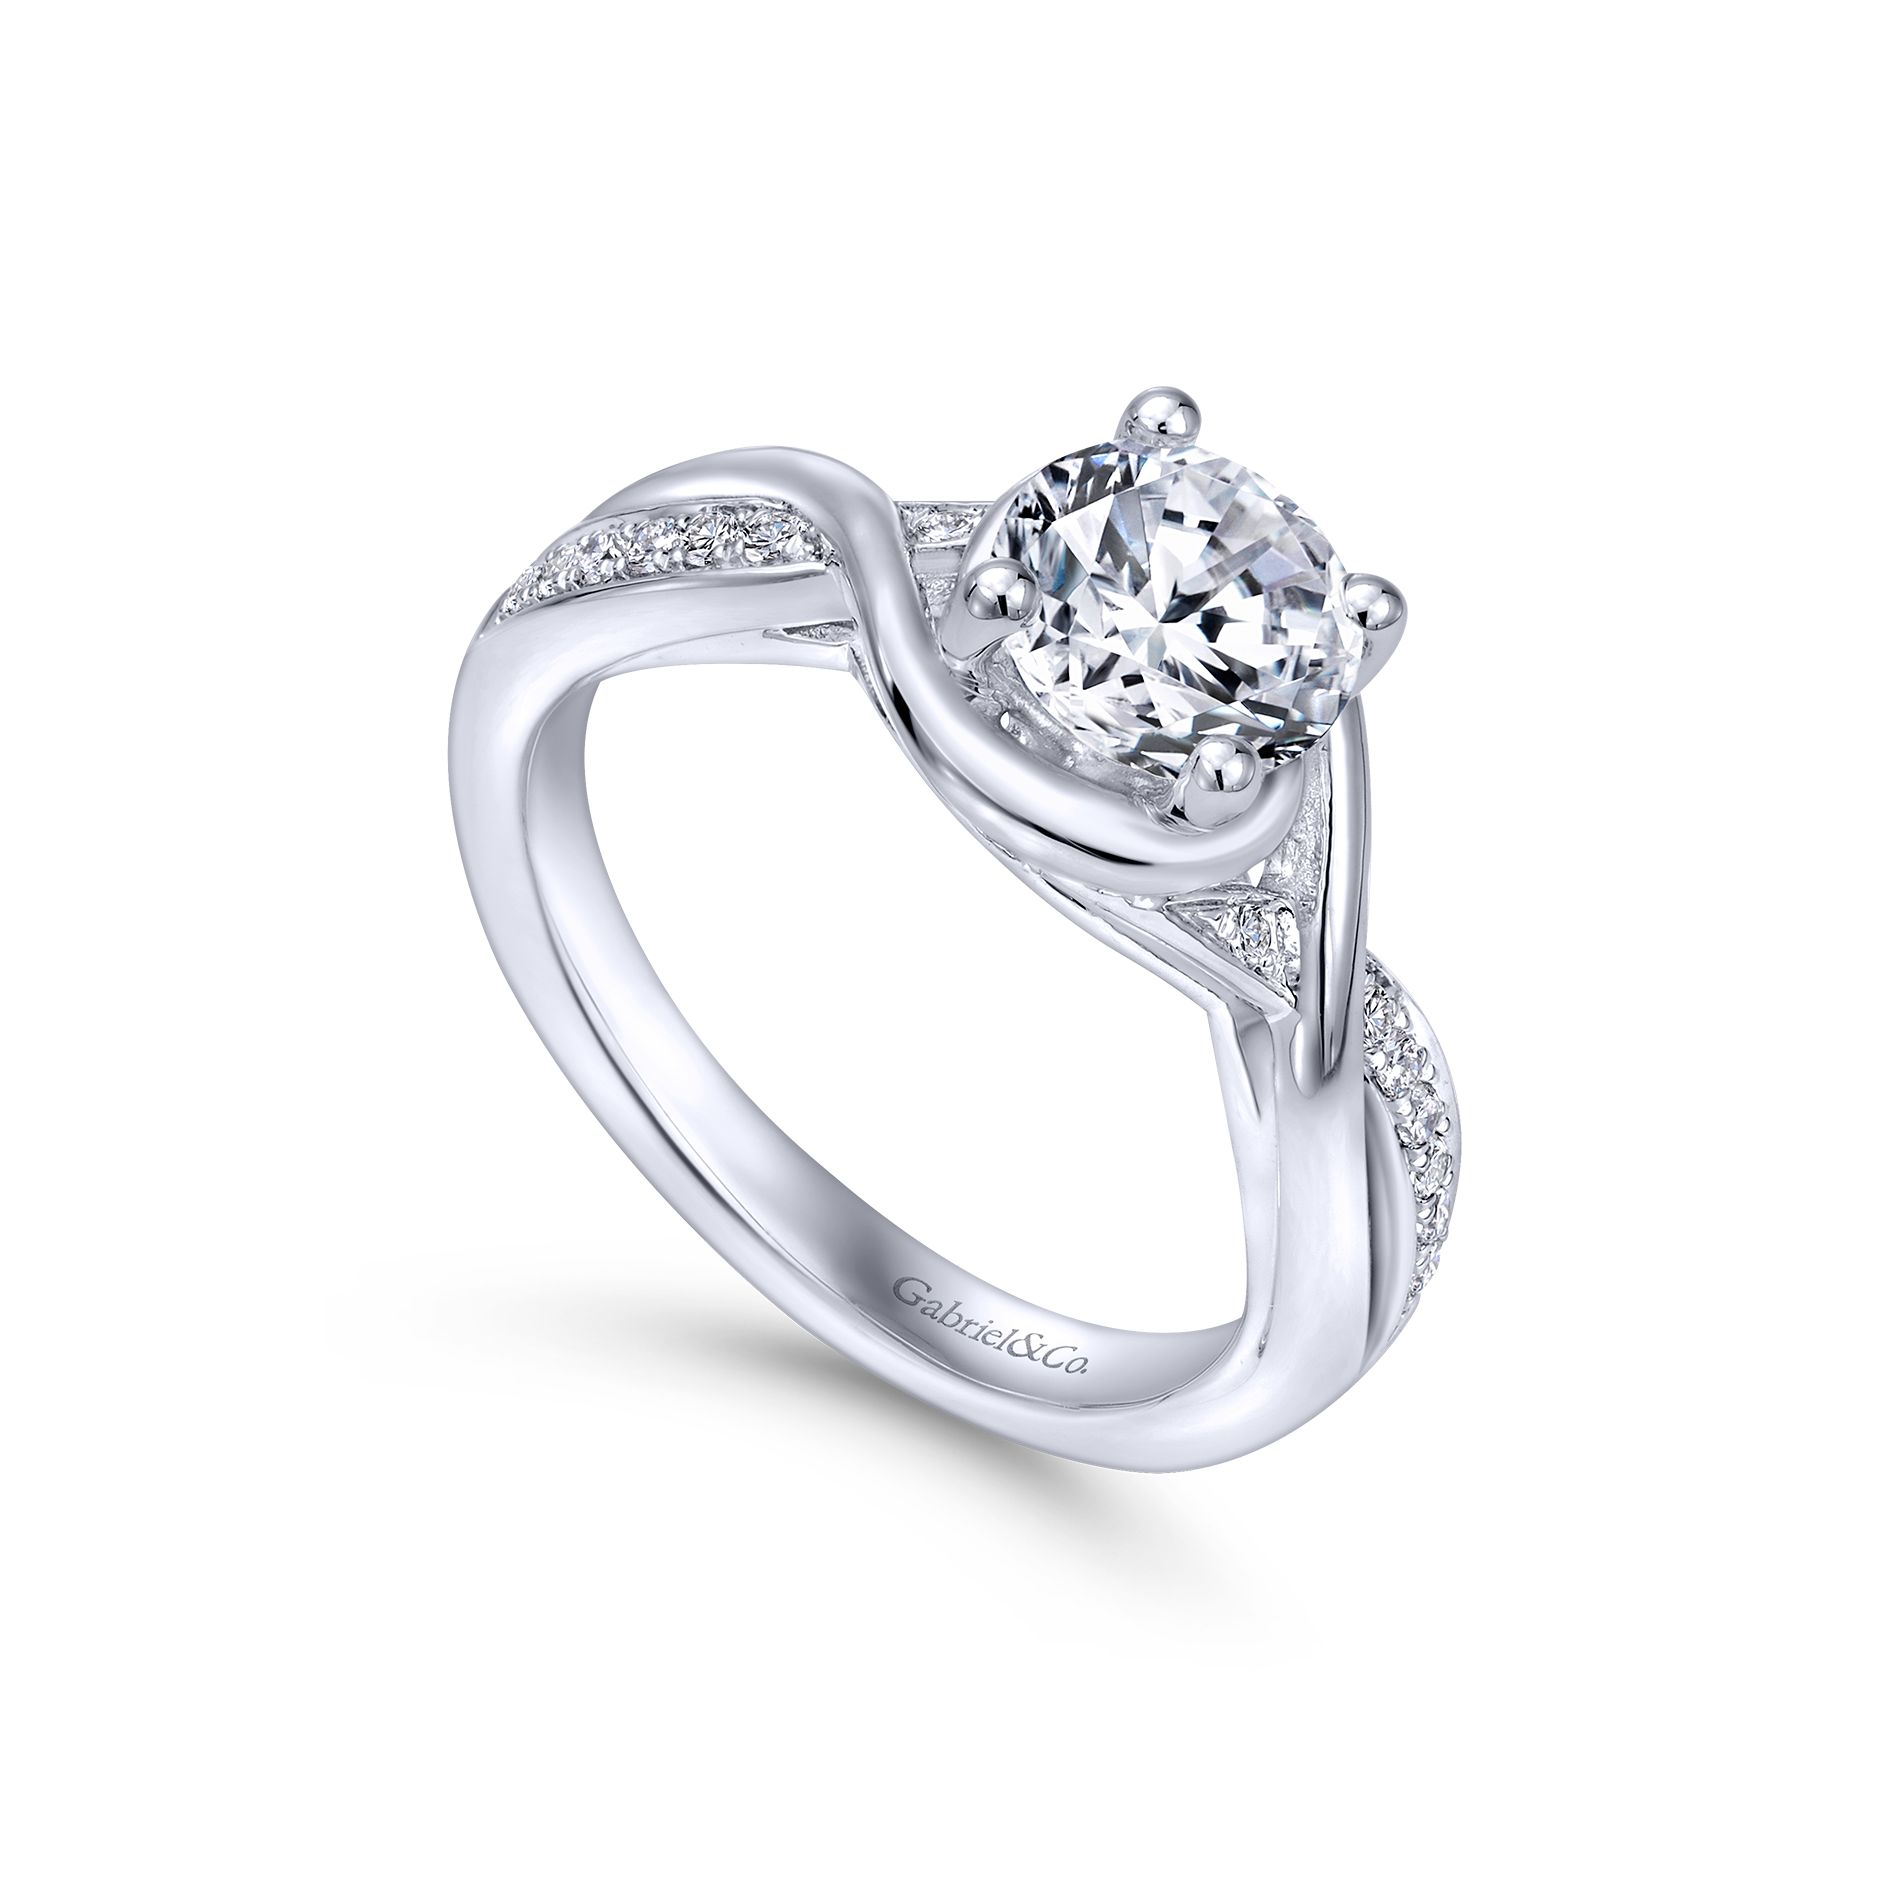 Engagement Rings - WHITE GOLD ROUND TWISTED DIAMOND ENGAGEMENT RING - image #3